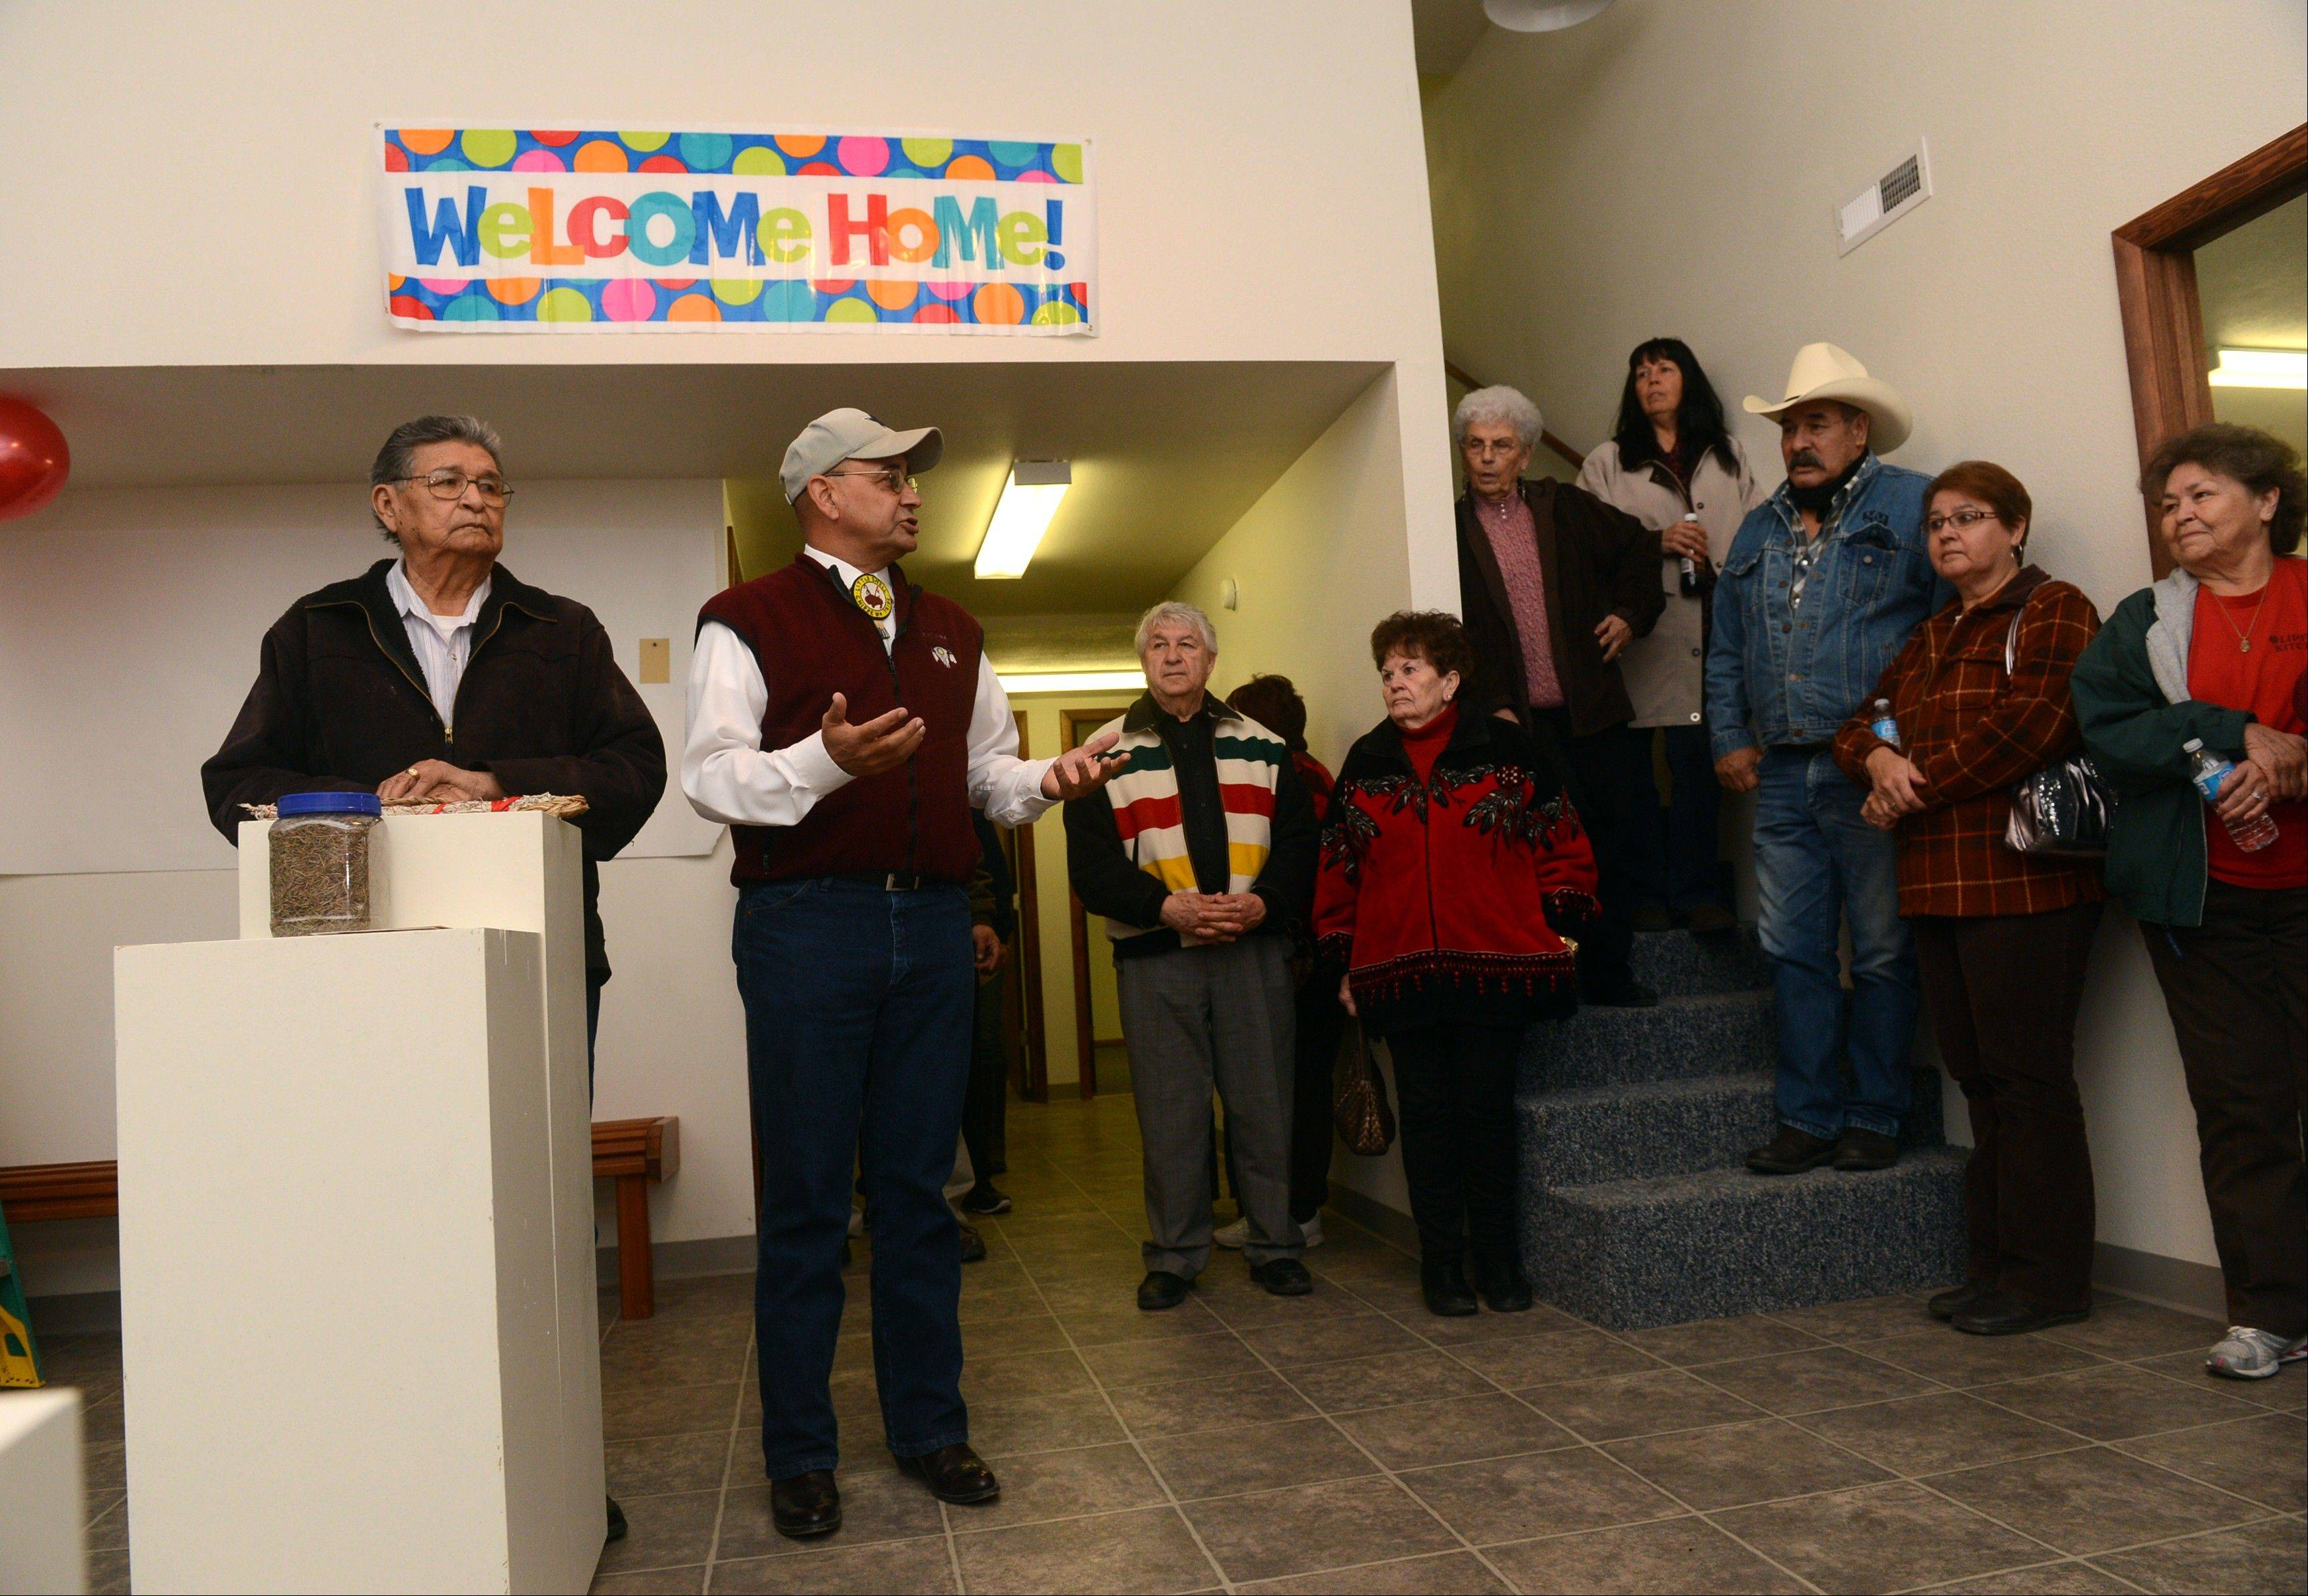 FHenry Anderson, left, and James Parker Shield welcome people to the new Little Shell Chippewa Cree Visitor Center in Montana.